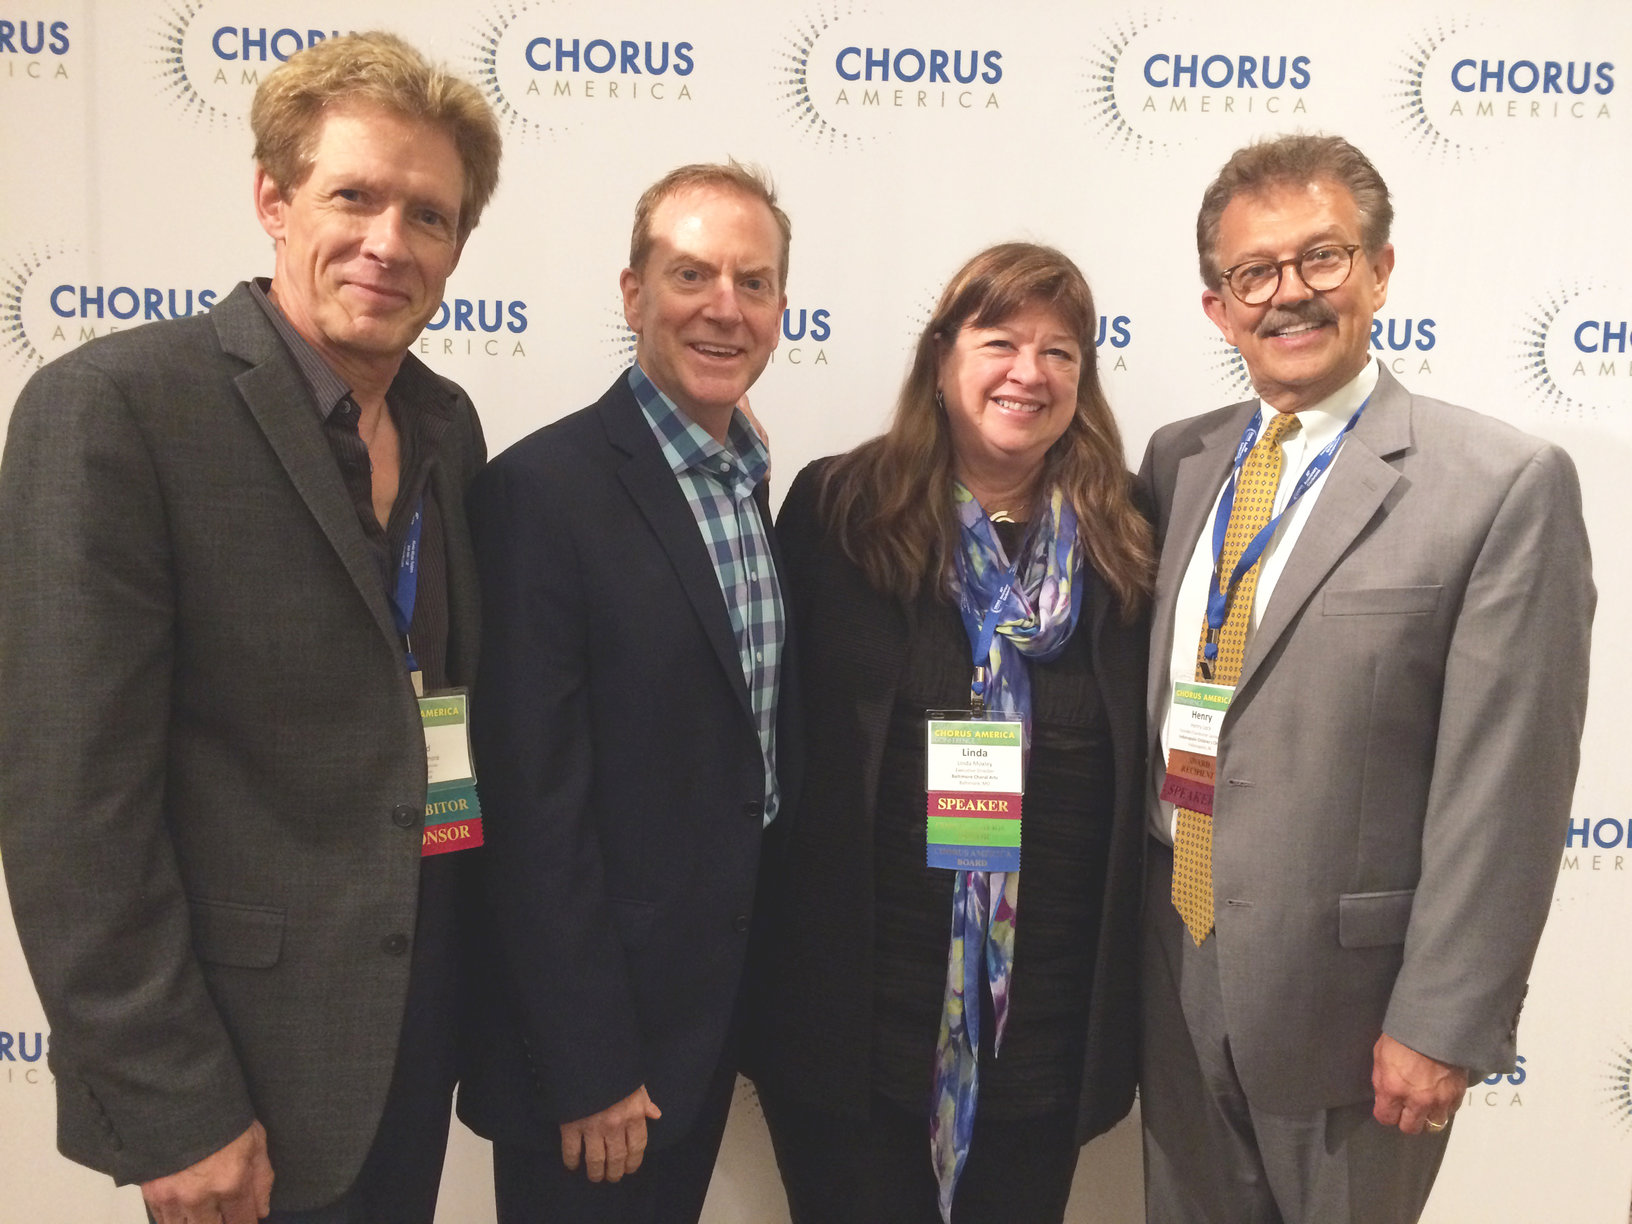 Four music directors in formal attire, including Encore's Ward Dilmore, smiling for a group photo at Chorus America with name tags and white Chorus America logo-covered backdrop